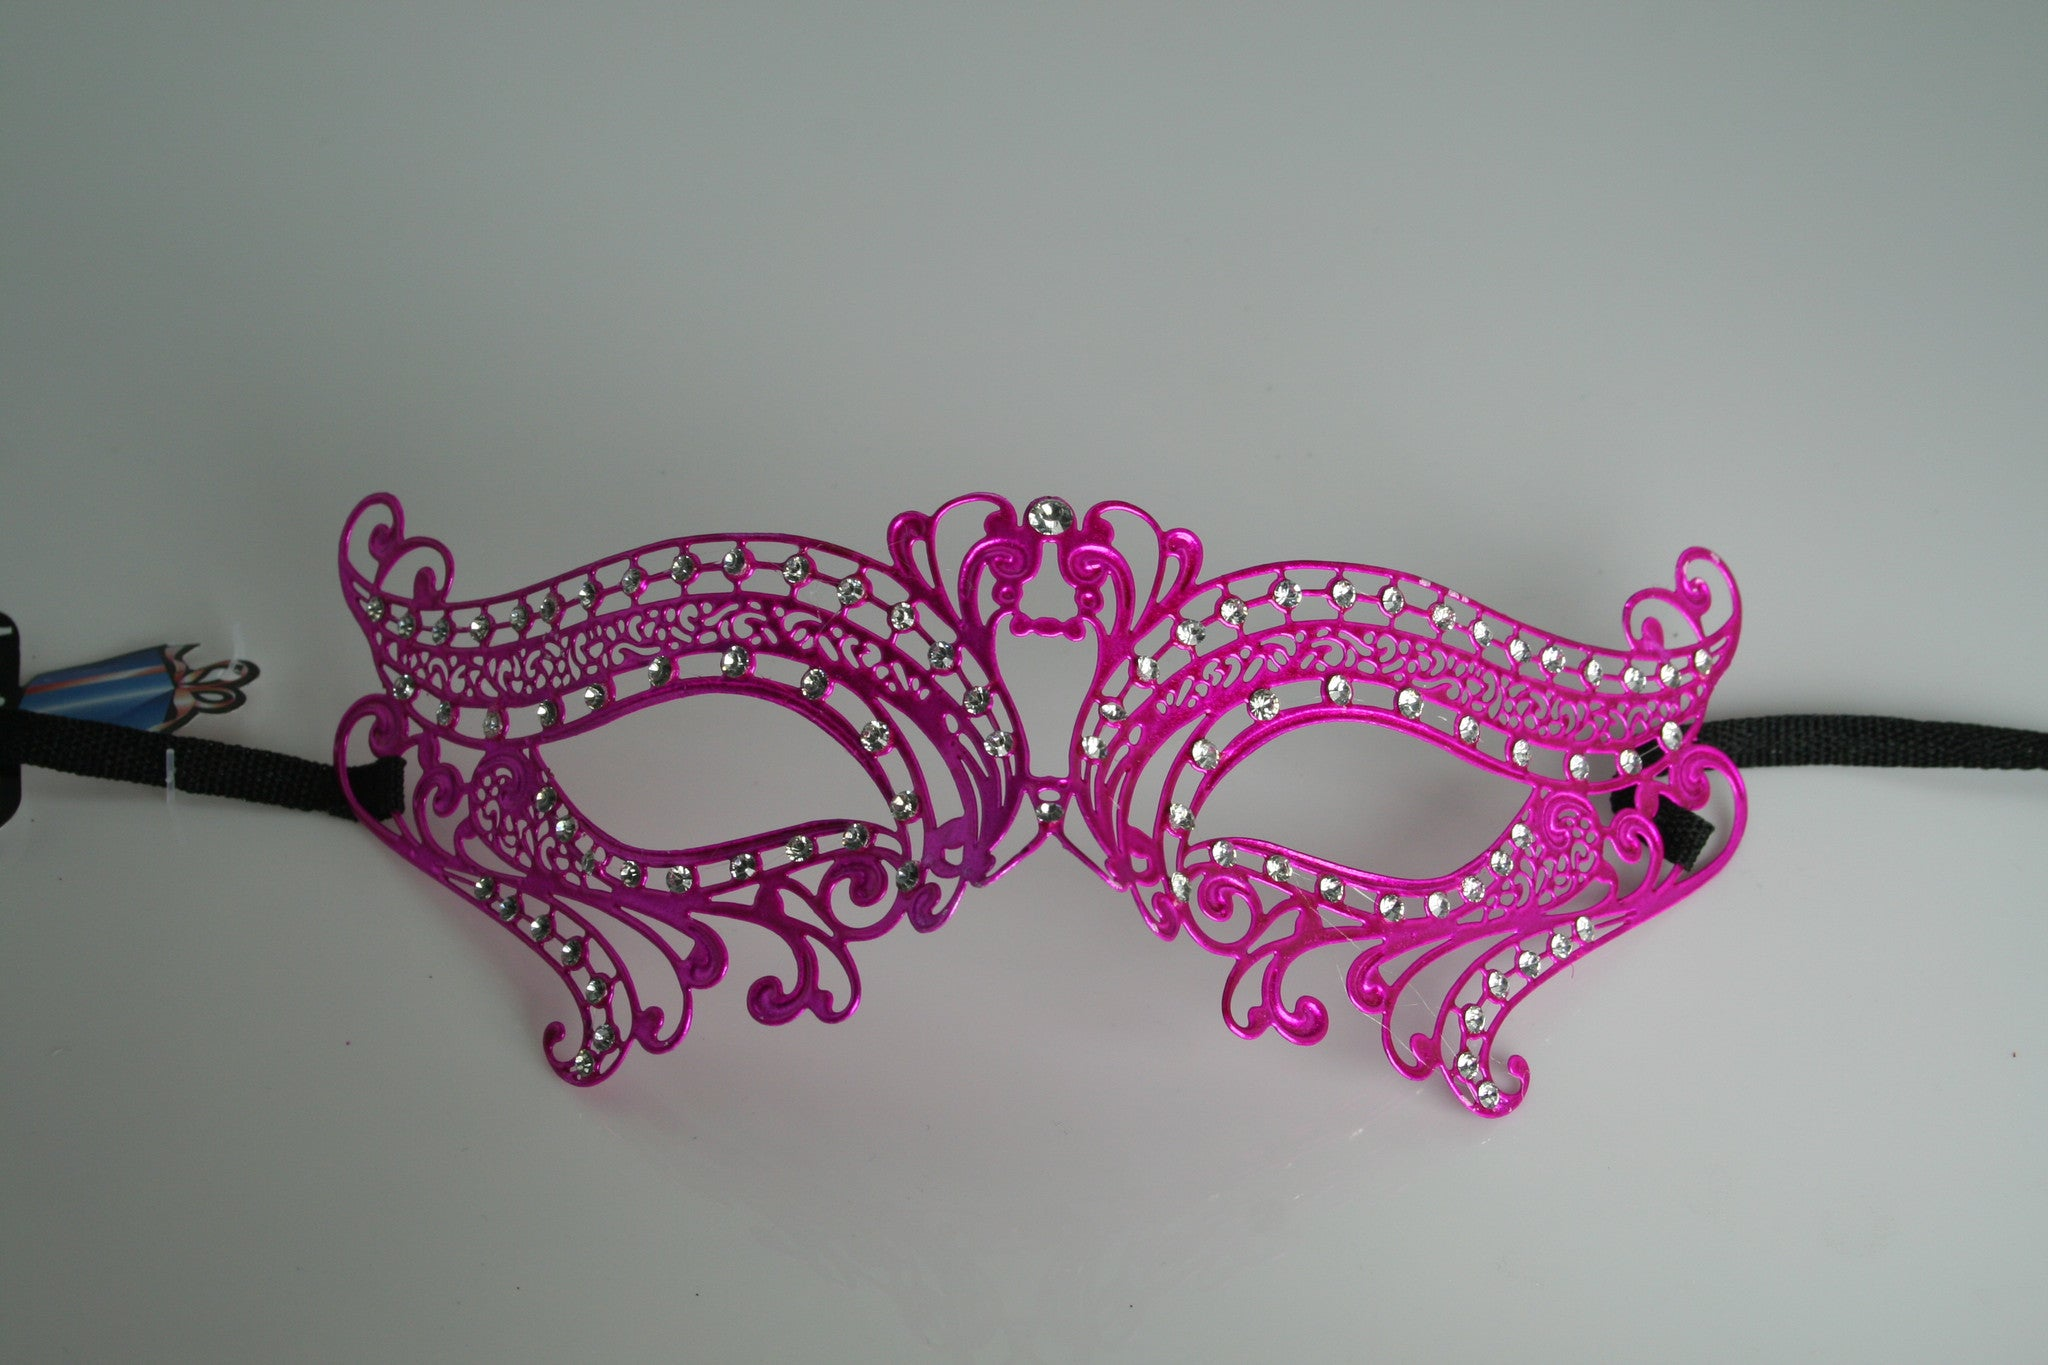 MK100 - Hot Pink Swan Mask with Diamantes -  CLEARANCE 50% OFF LISTED PRICE